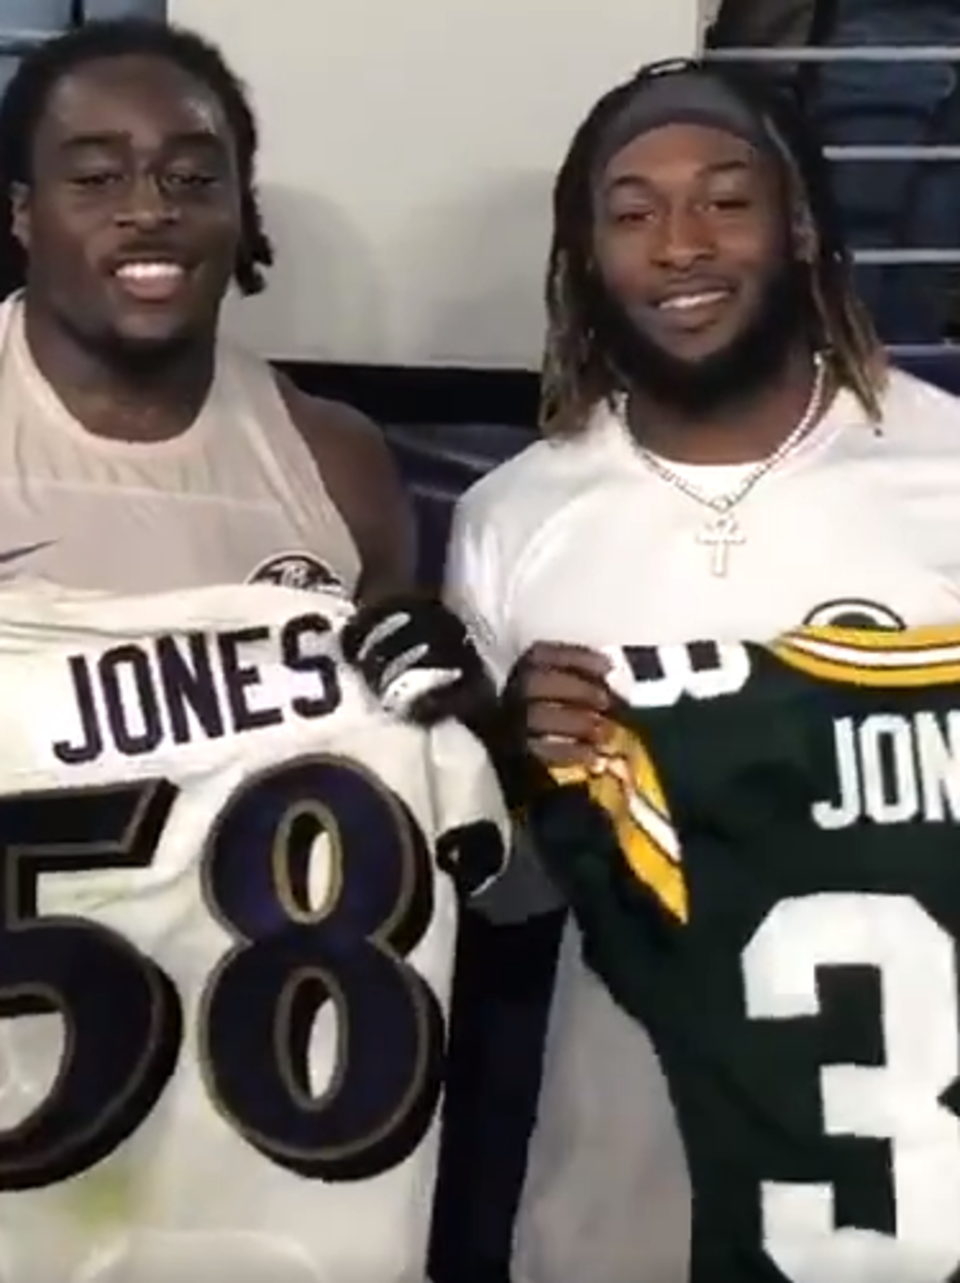 Jones Shares Moment With Twin Ravens Wluk